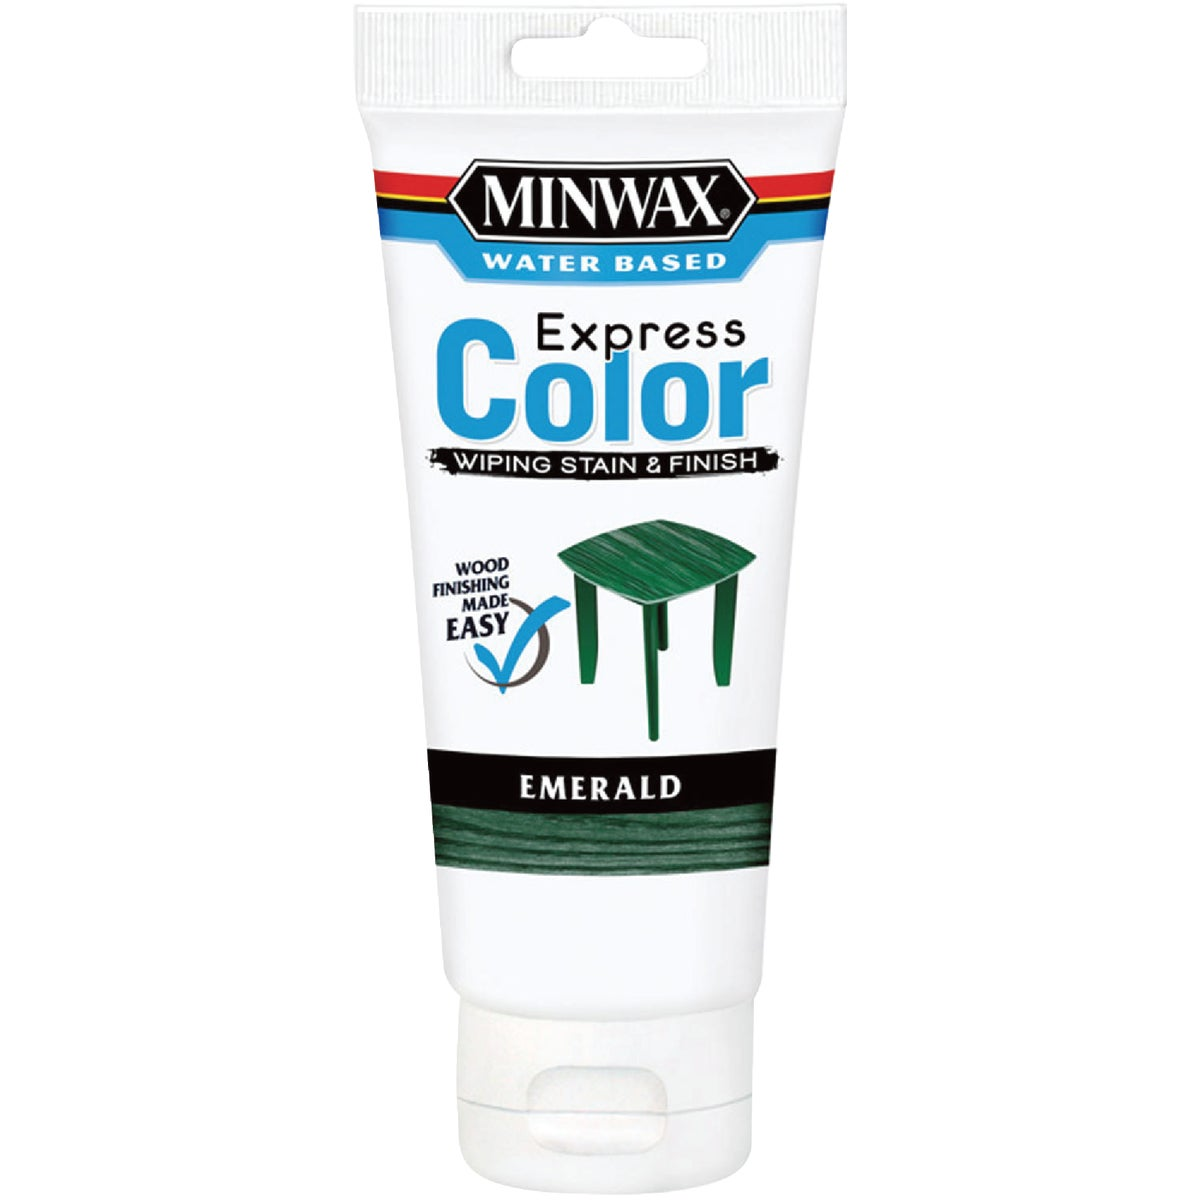 EMERALD WIPING STAIN - 308064444 by Minwax Company